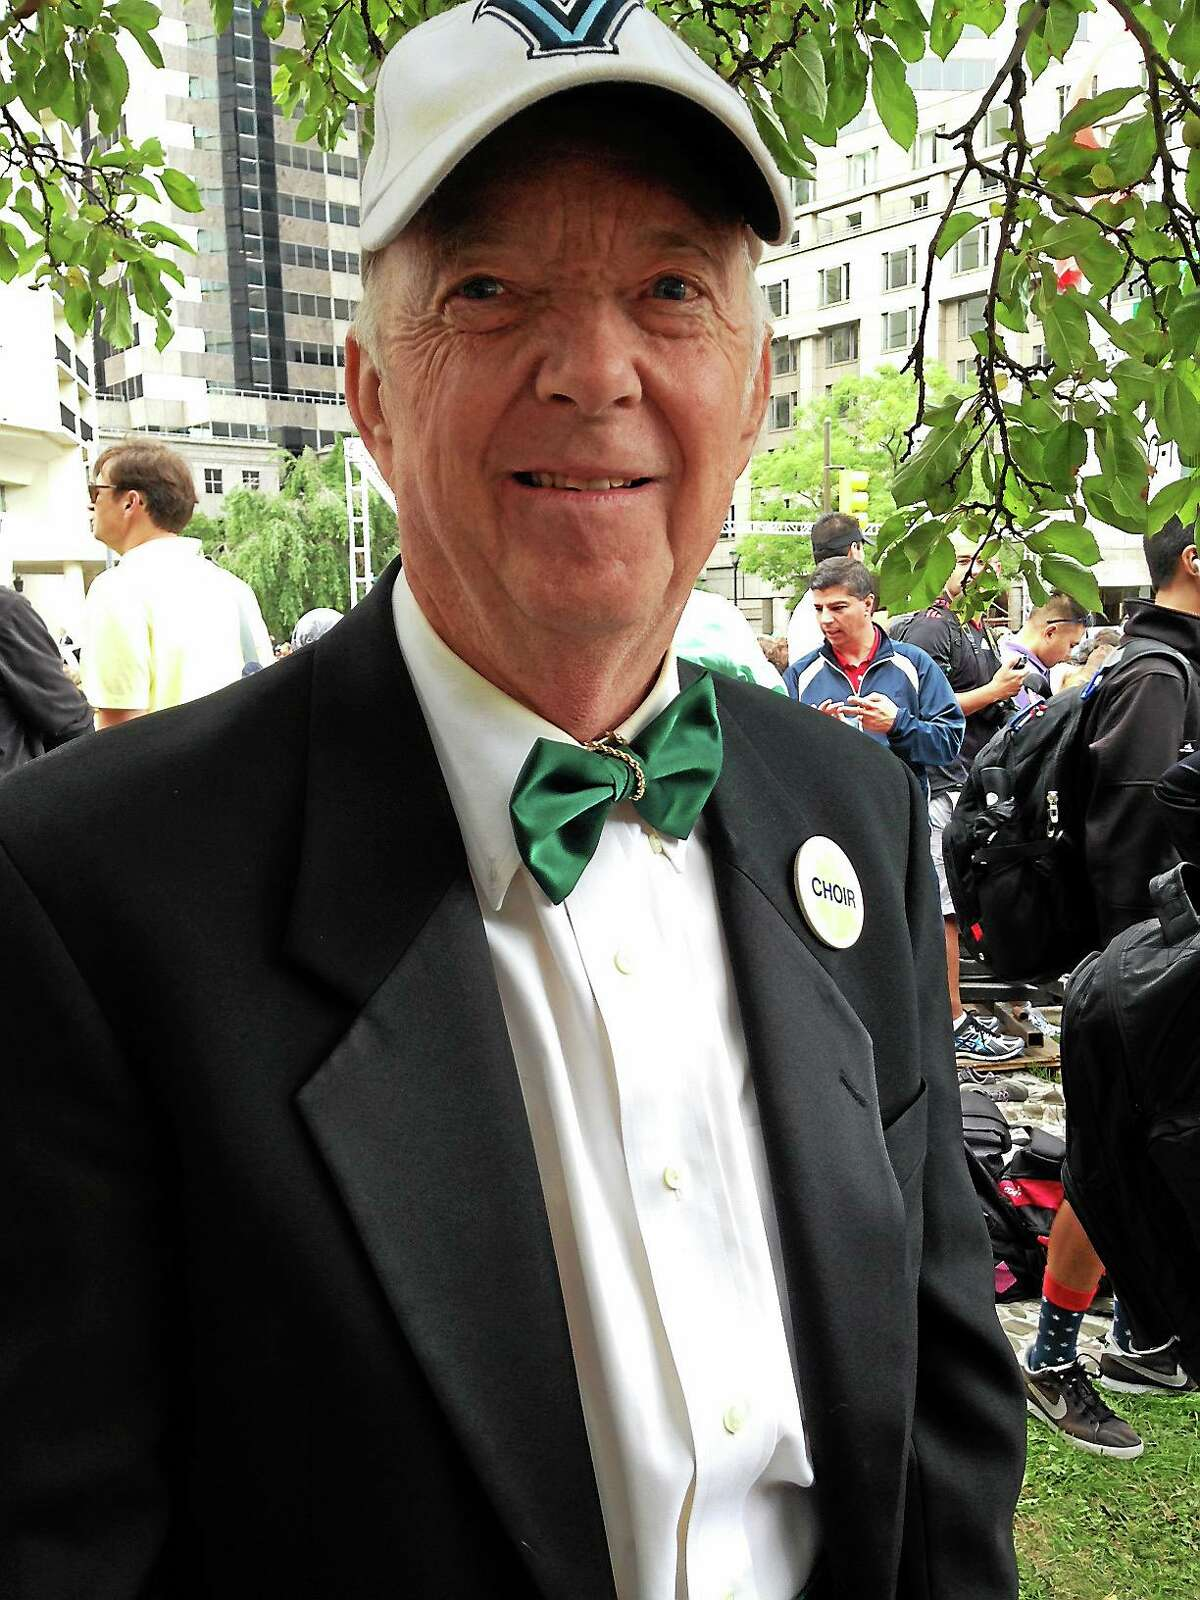 Jack McMenamin was among those waiting for a chance to see Pope Francis.